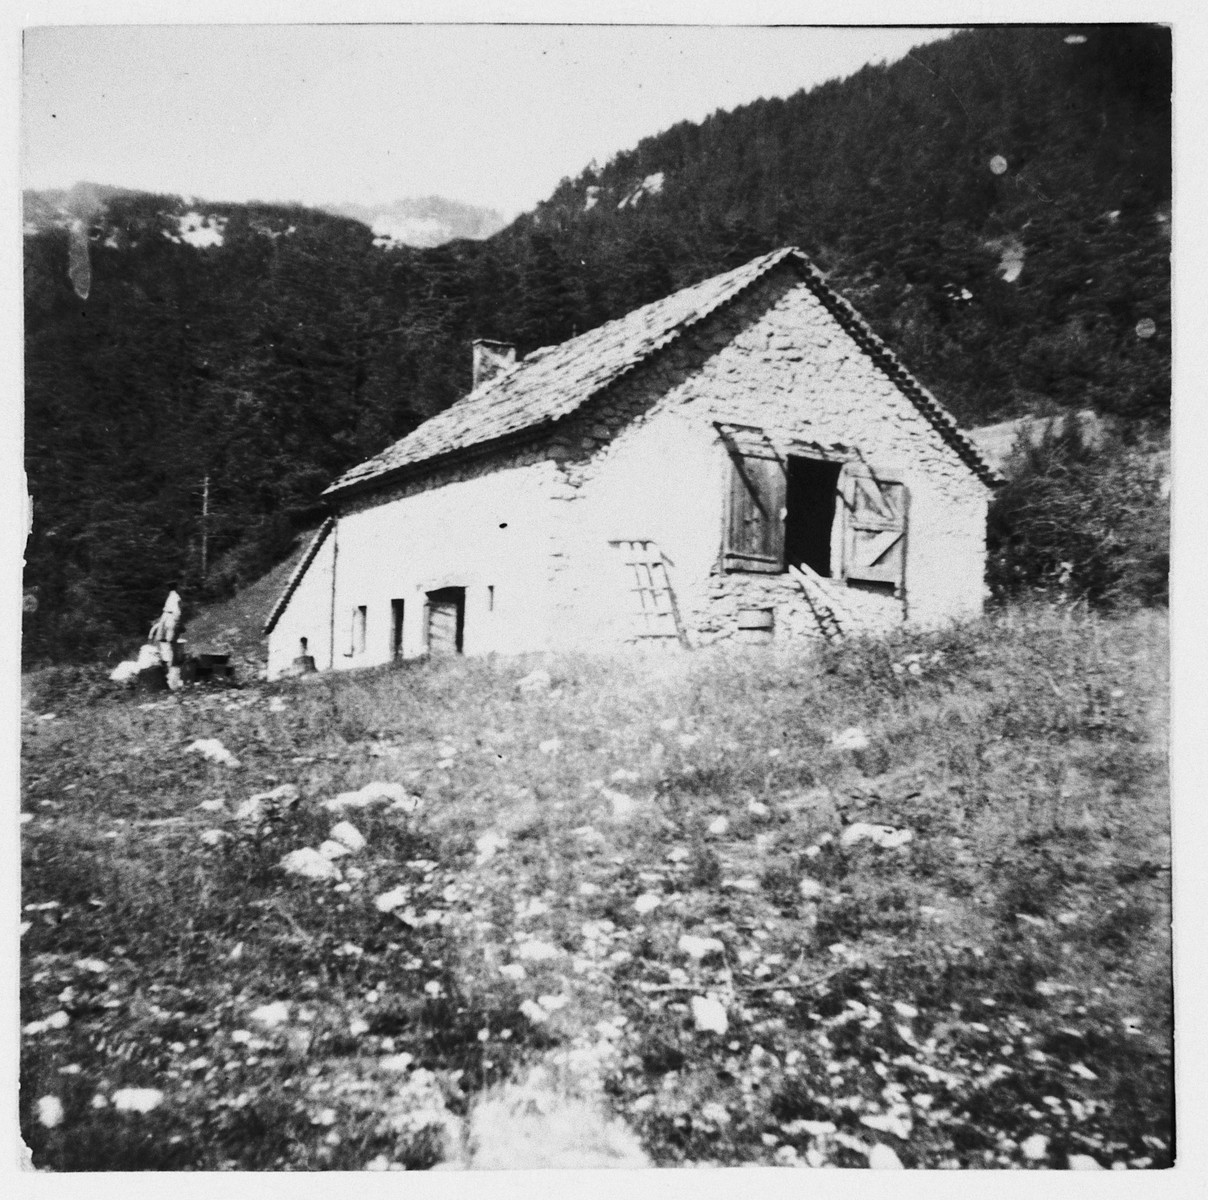 View of the mountain residence in Col de Menee where Eryk Goldfarb hid out during the German occupation of France.